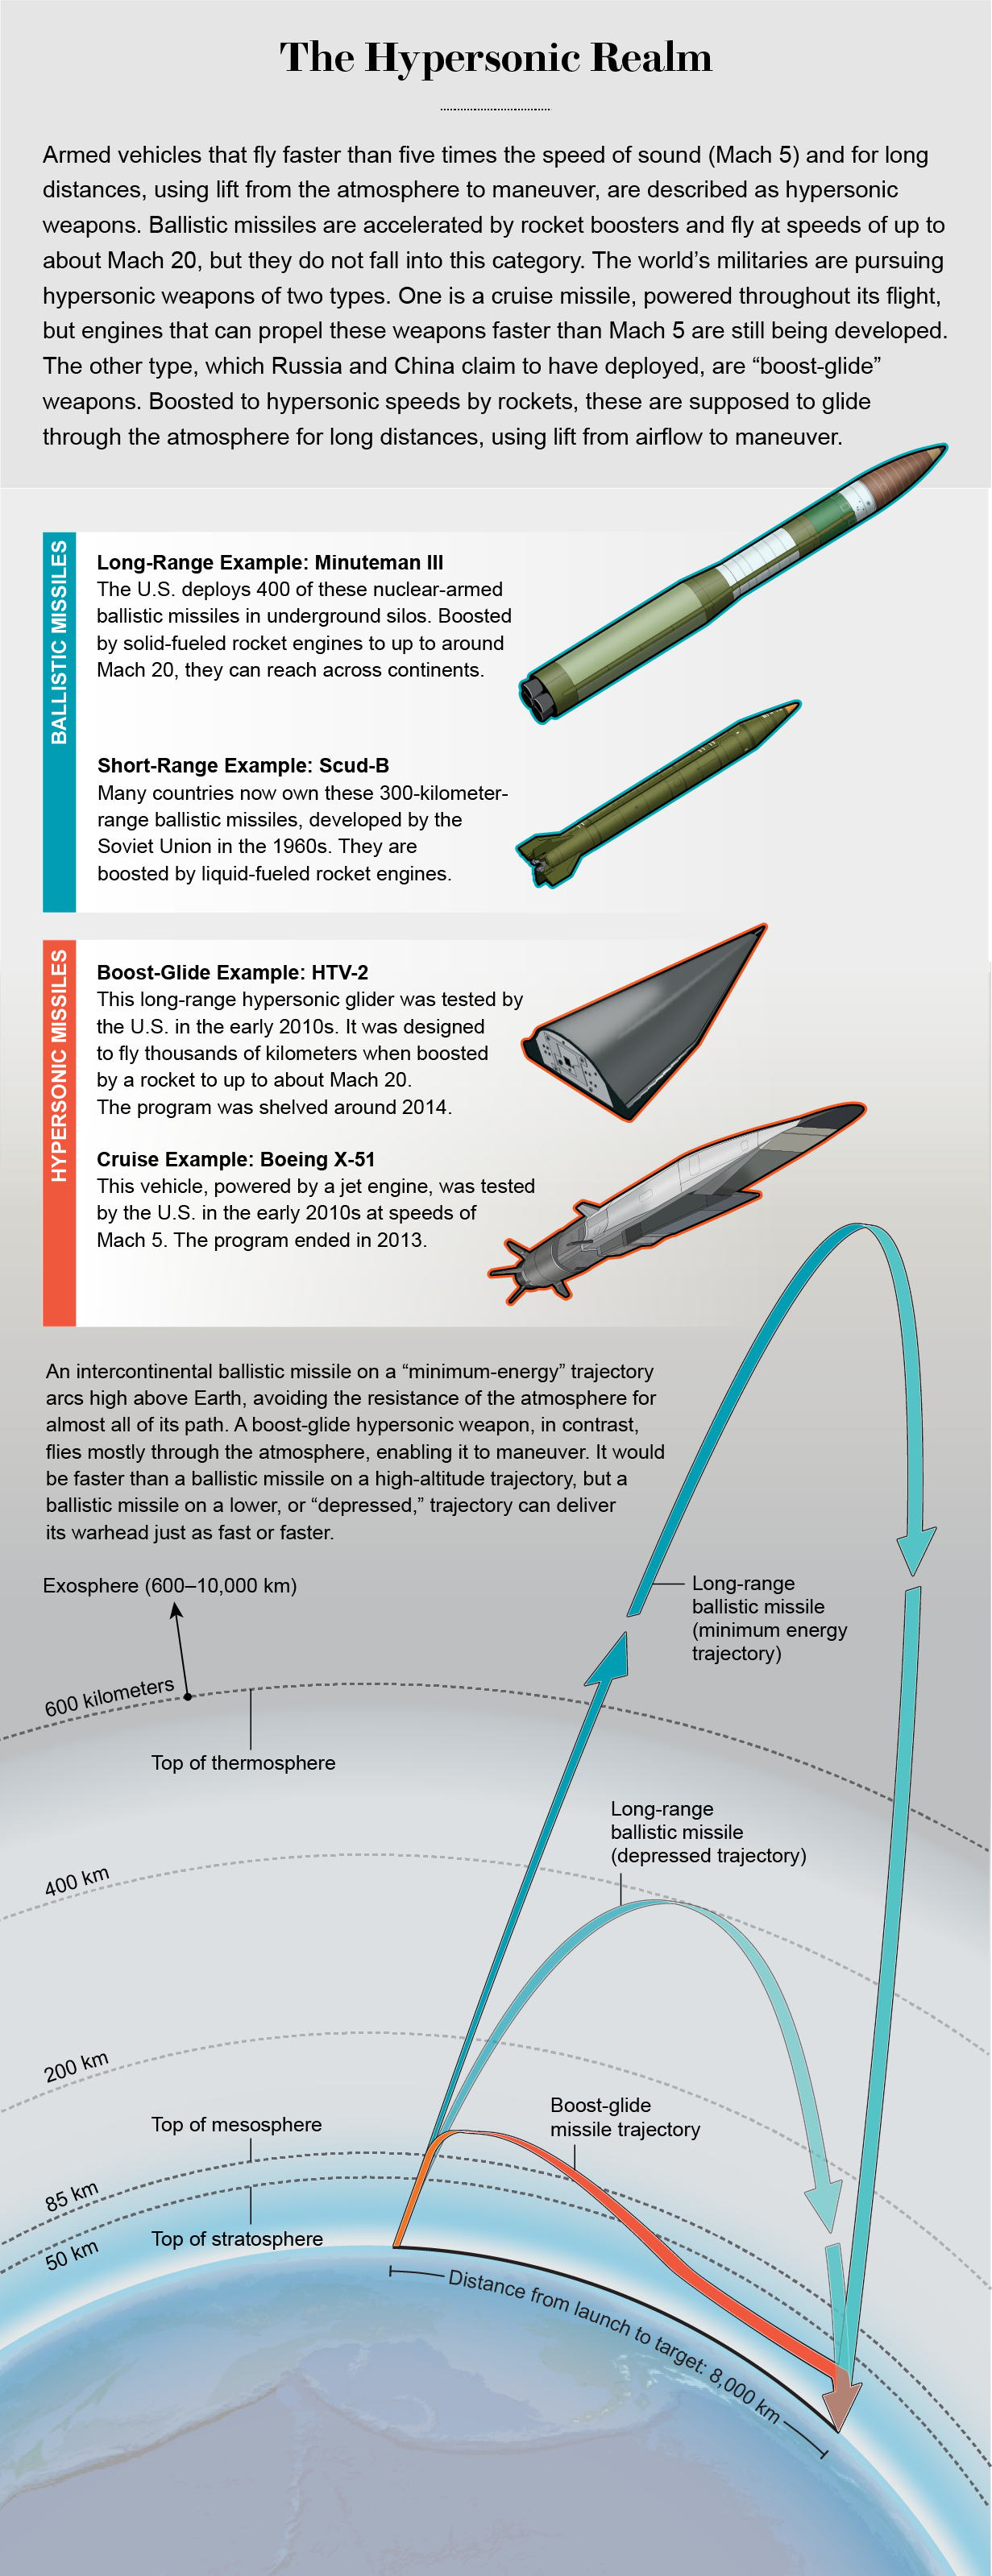 Graphic compares trajectories of short- and long-range ballistic missiles vs. hypersonic boost-glide and cruise weapons.